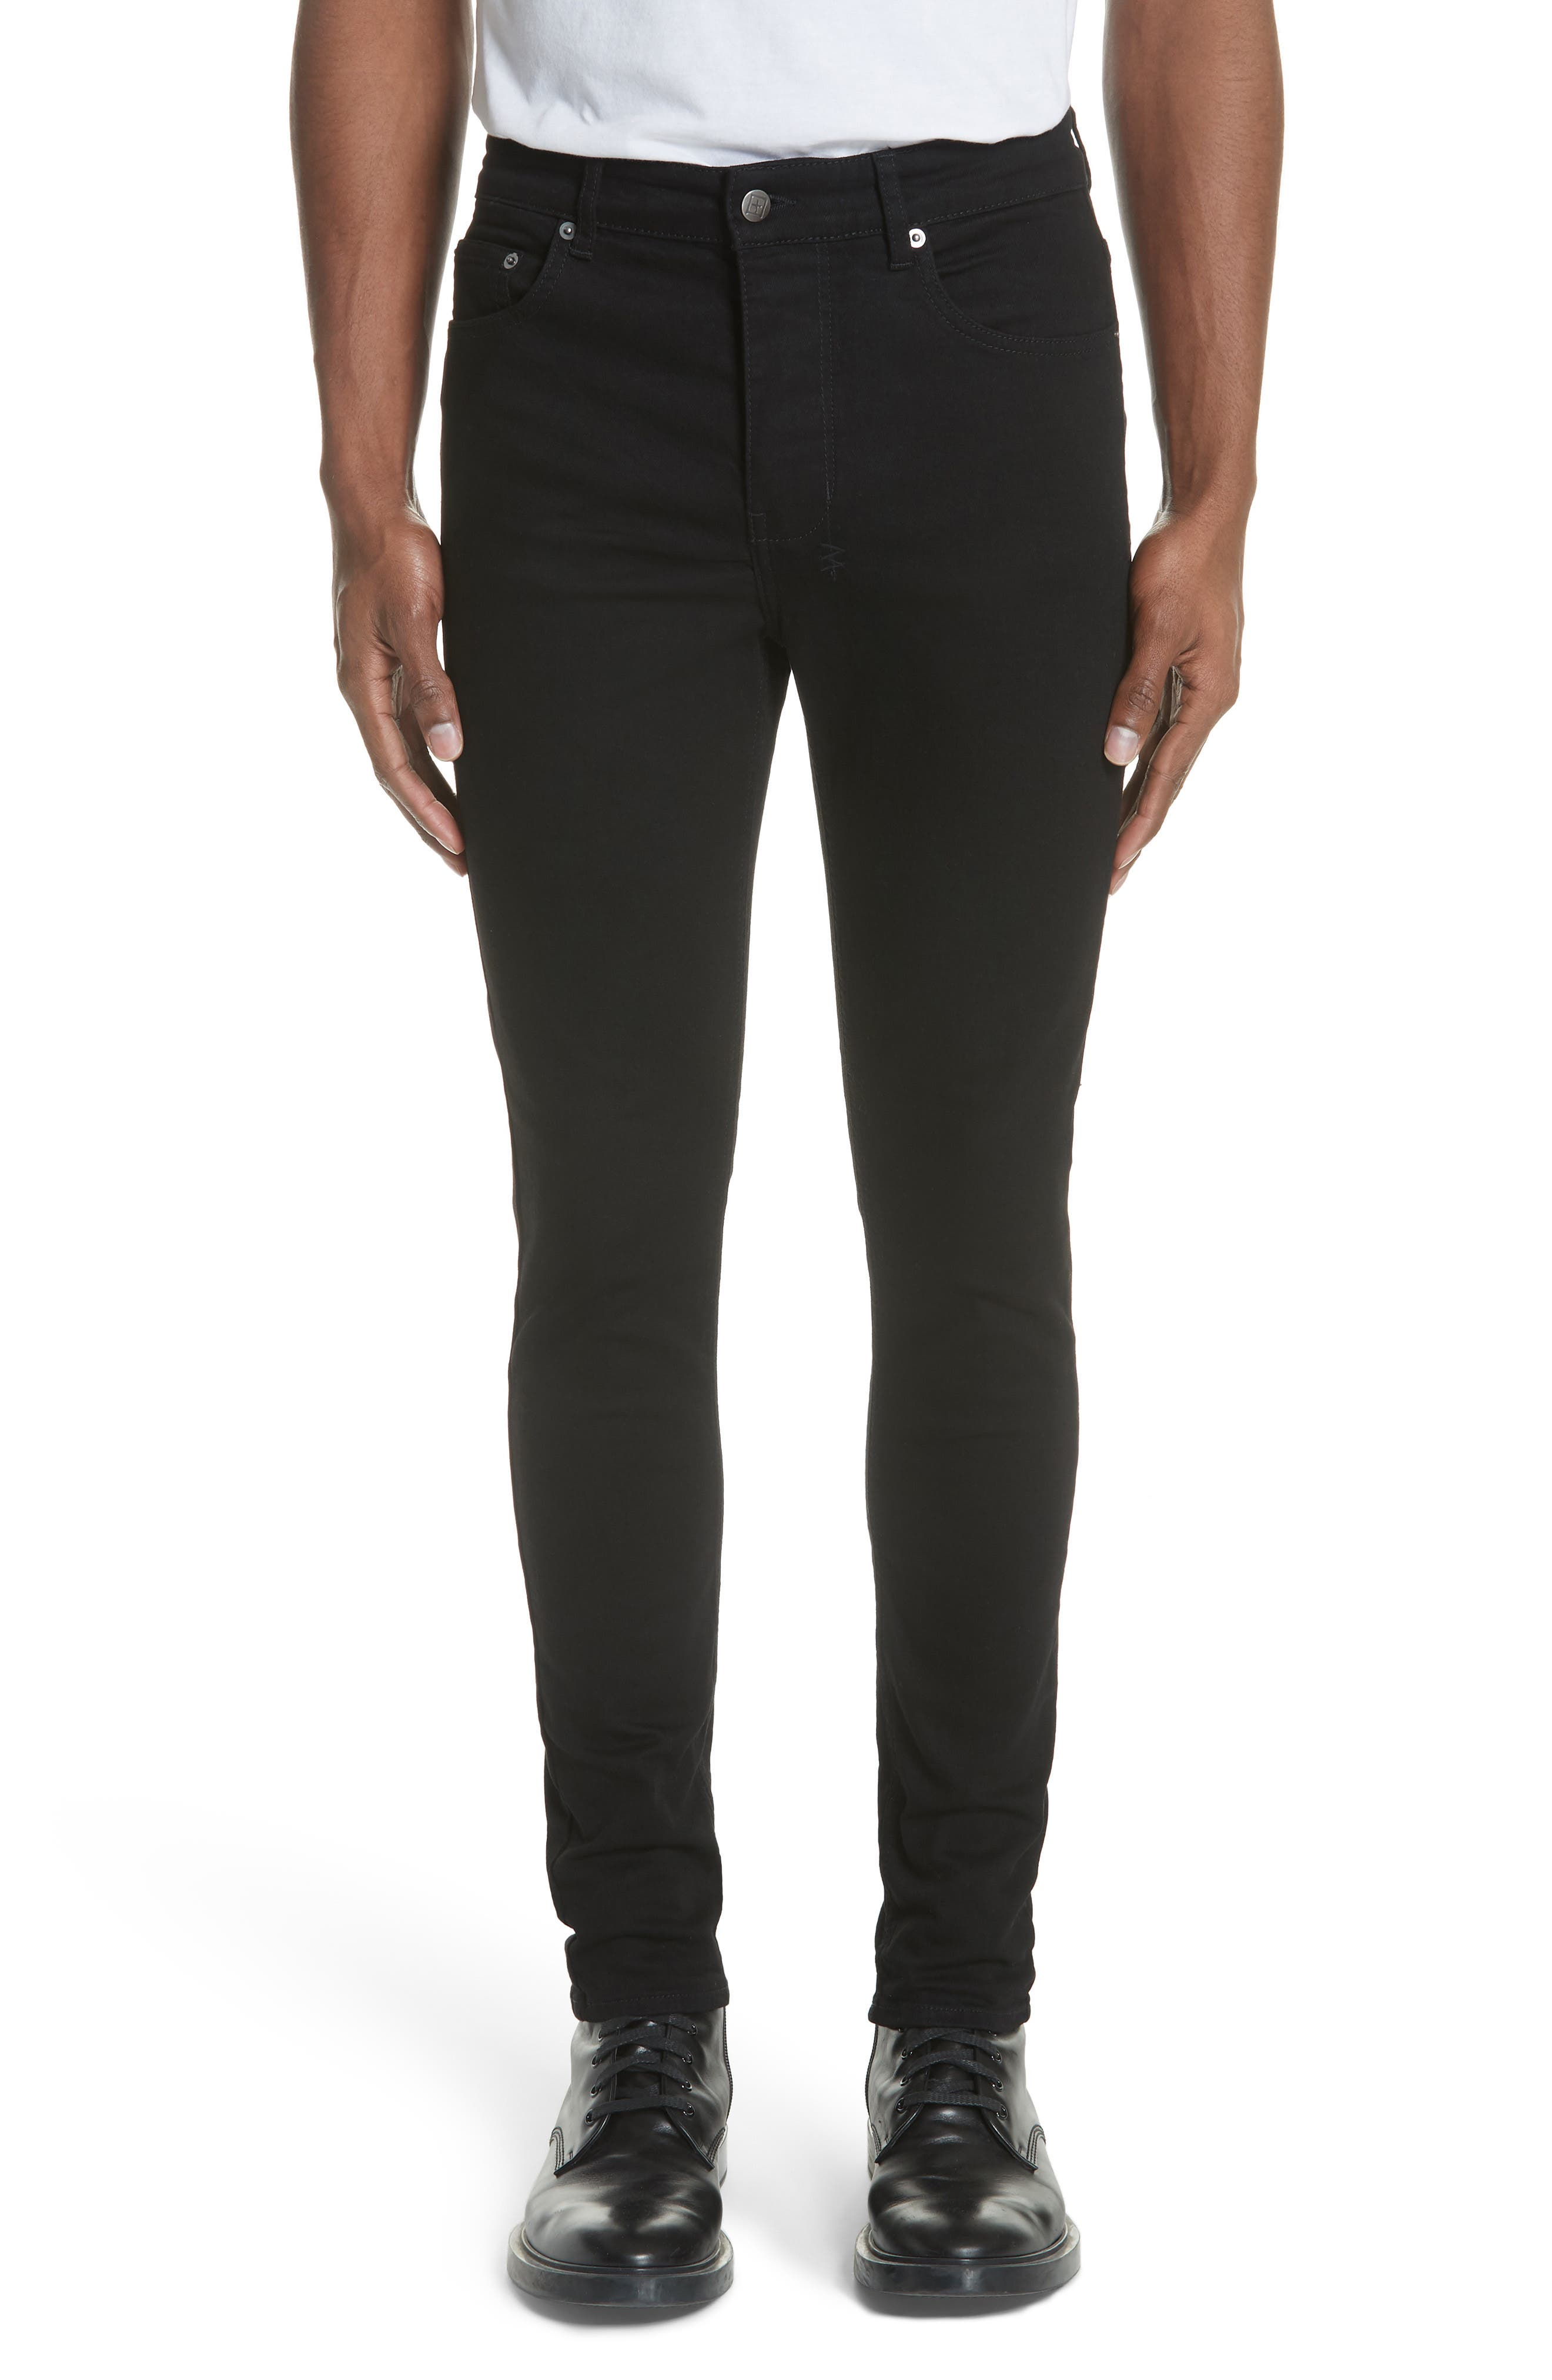 Chitch Laid Skinny Fit Jeans,                         Main,                         color, BLACK